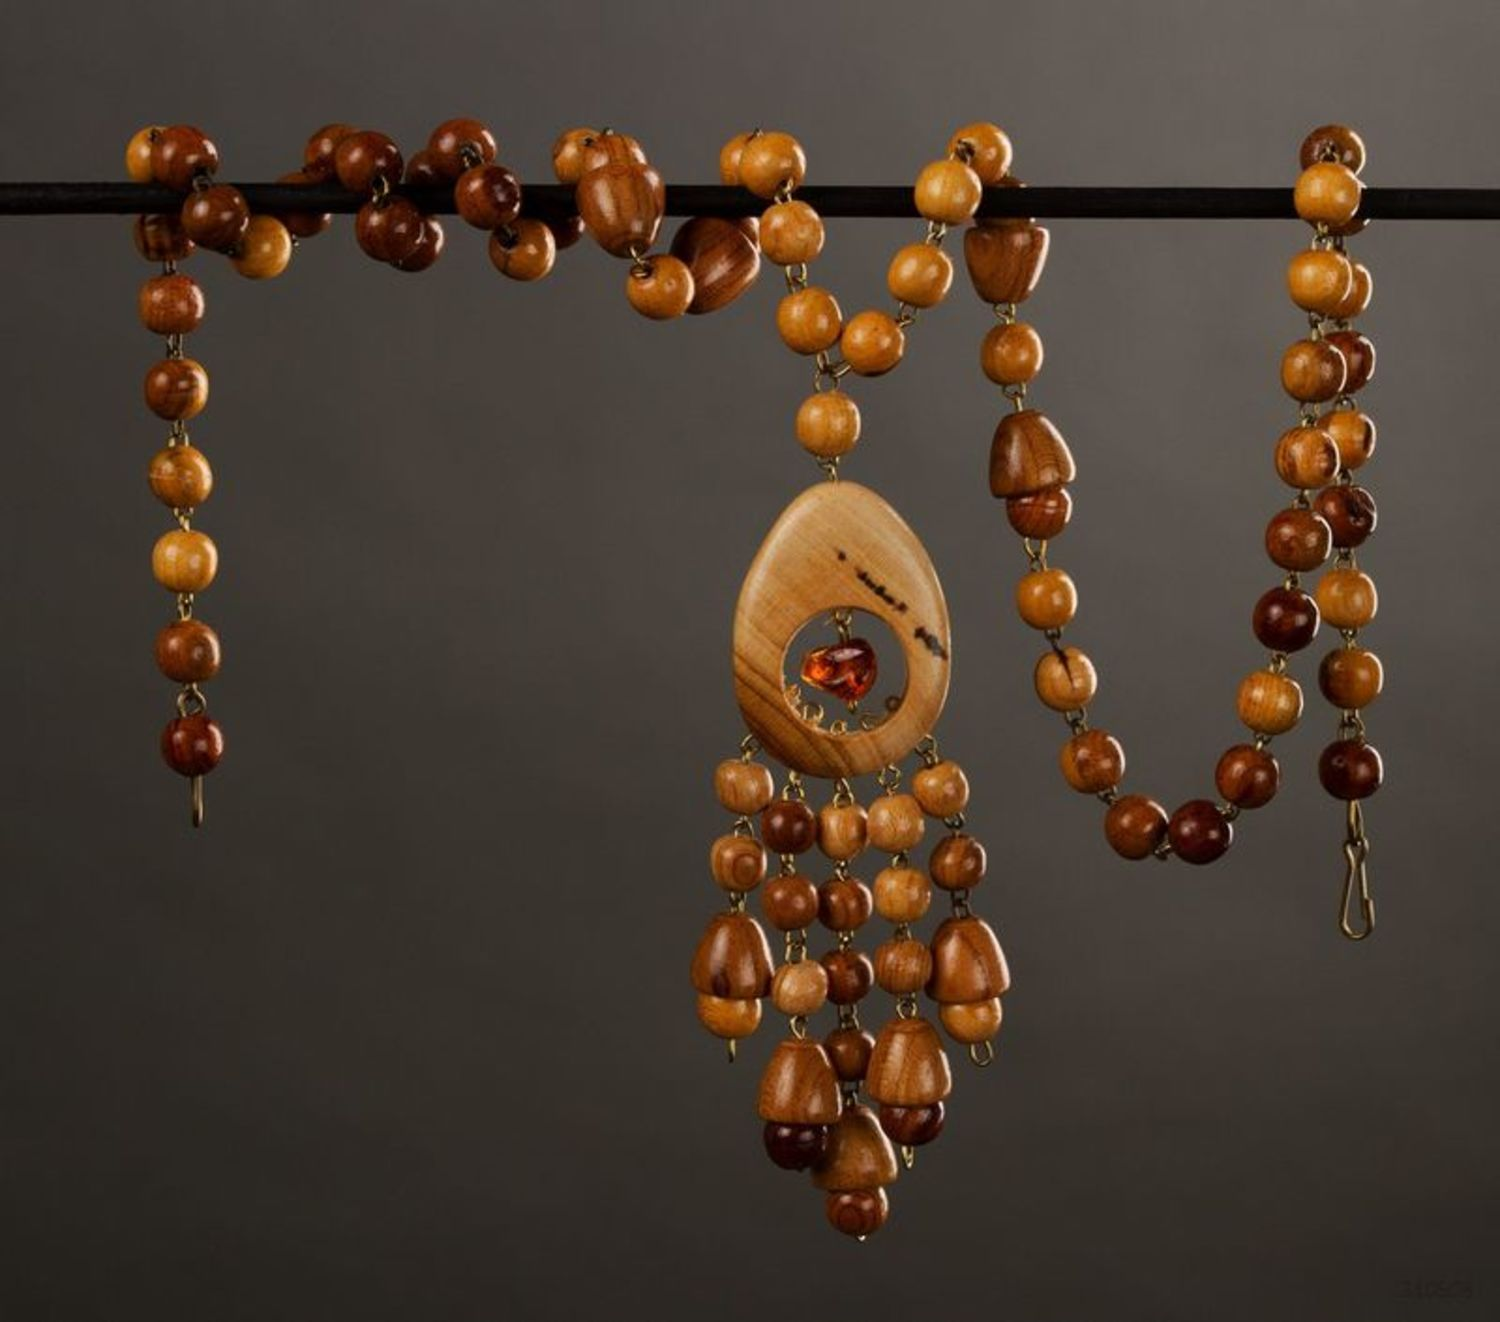 Wooden bead necklace photo 1